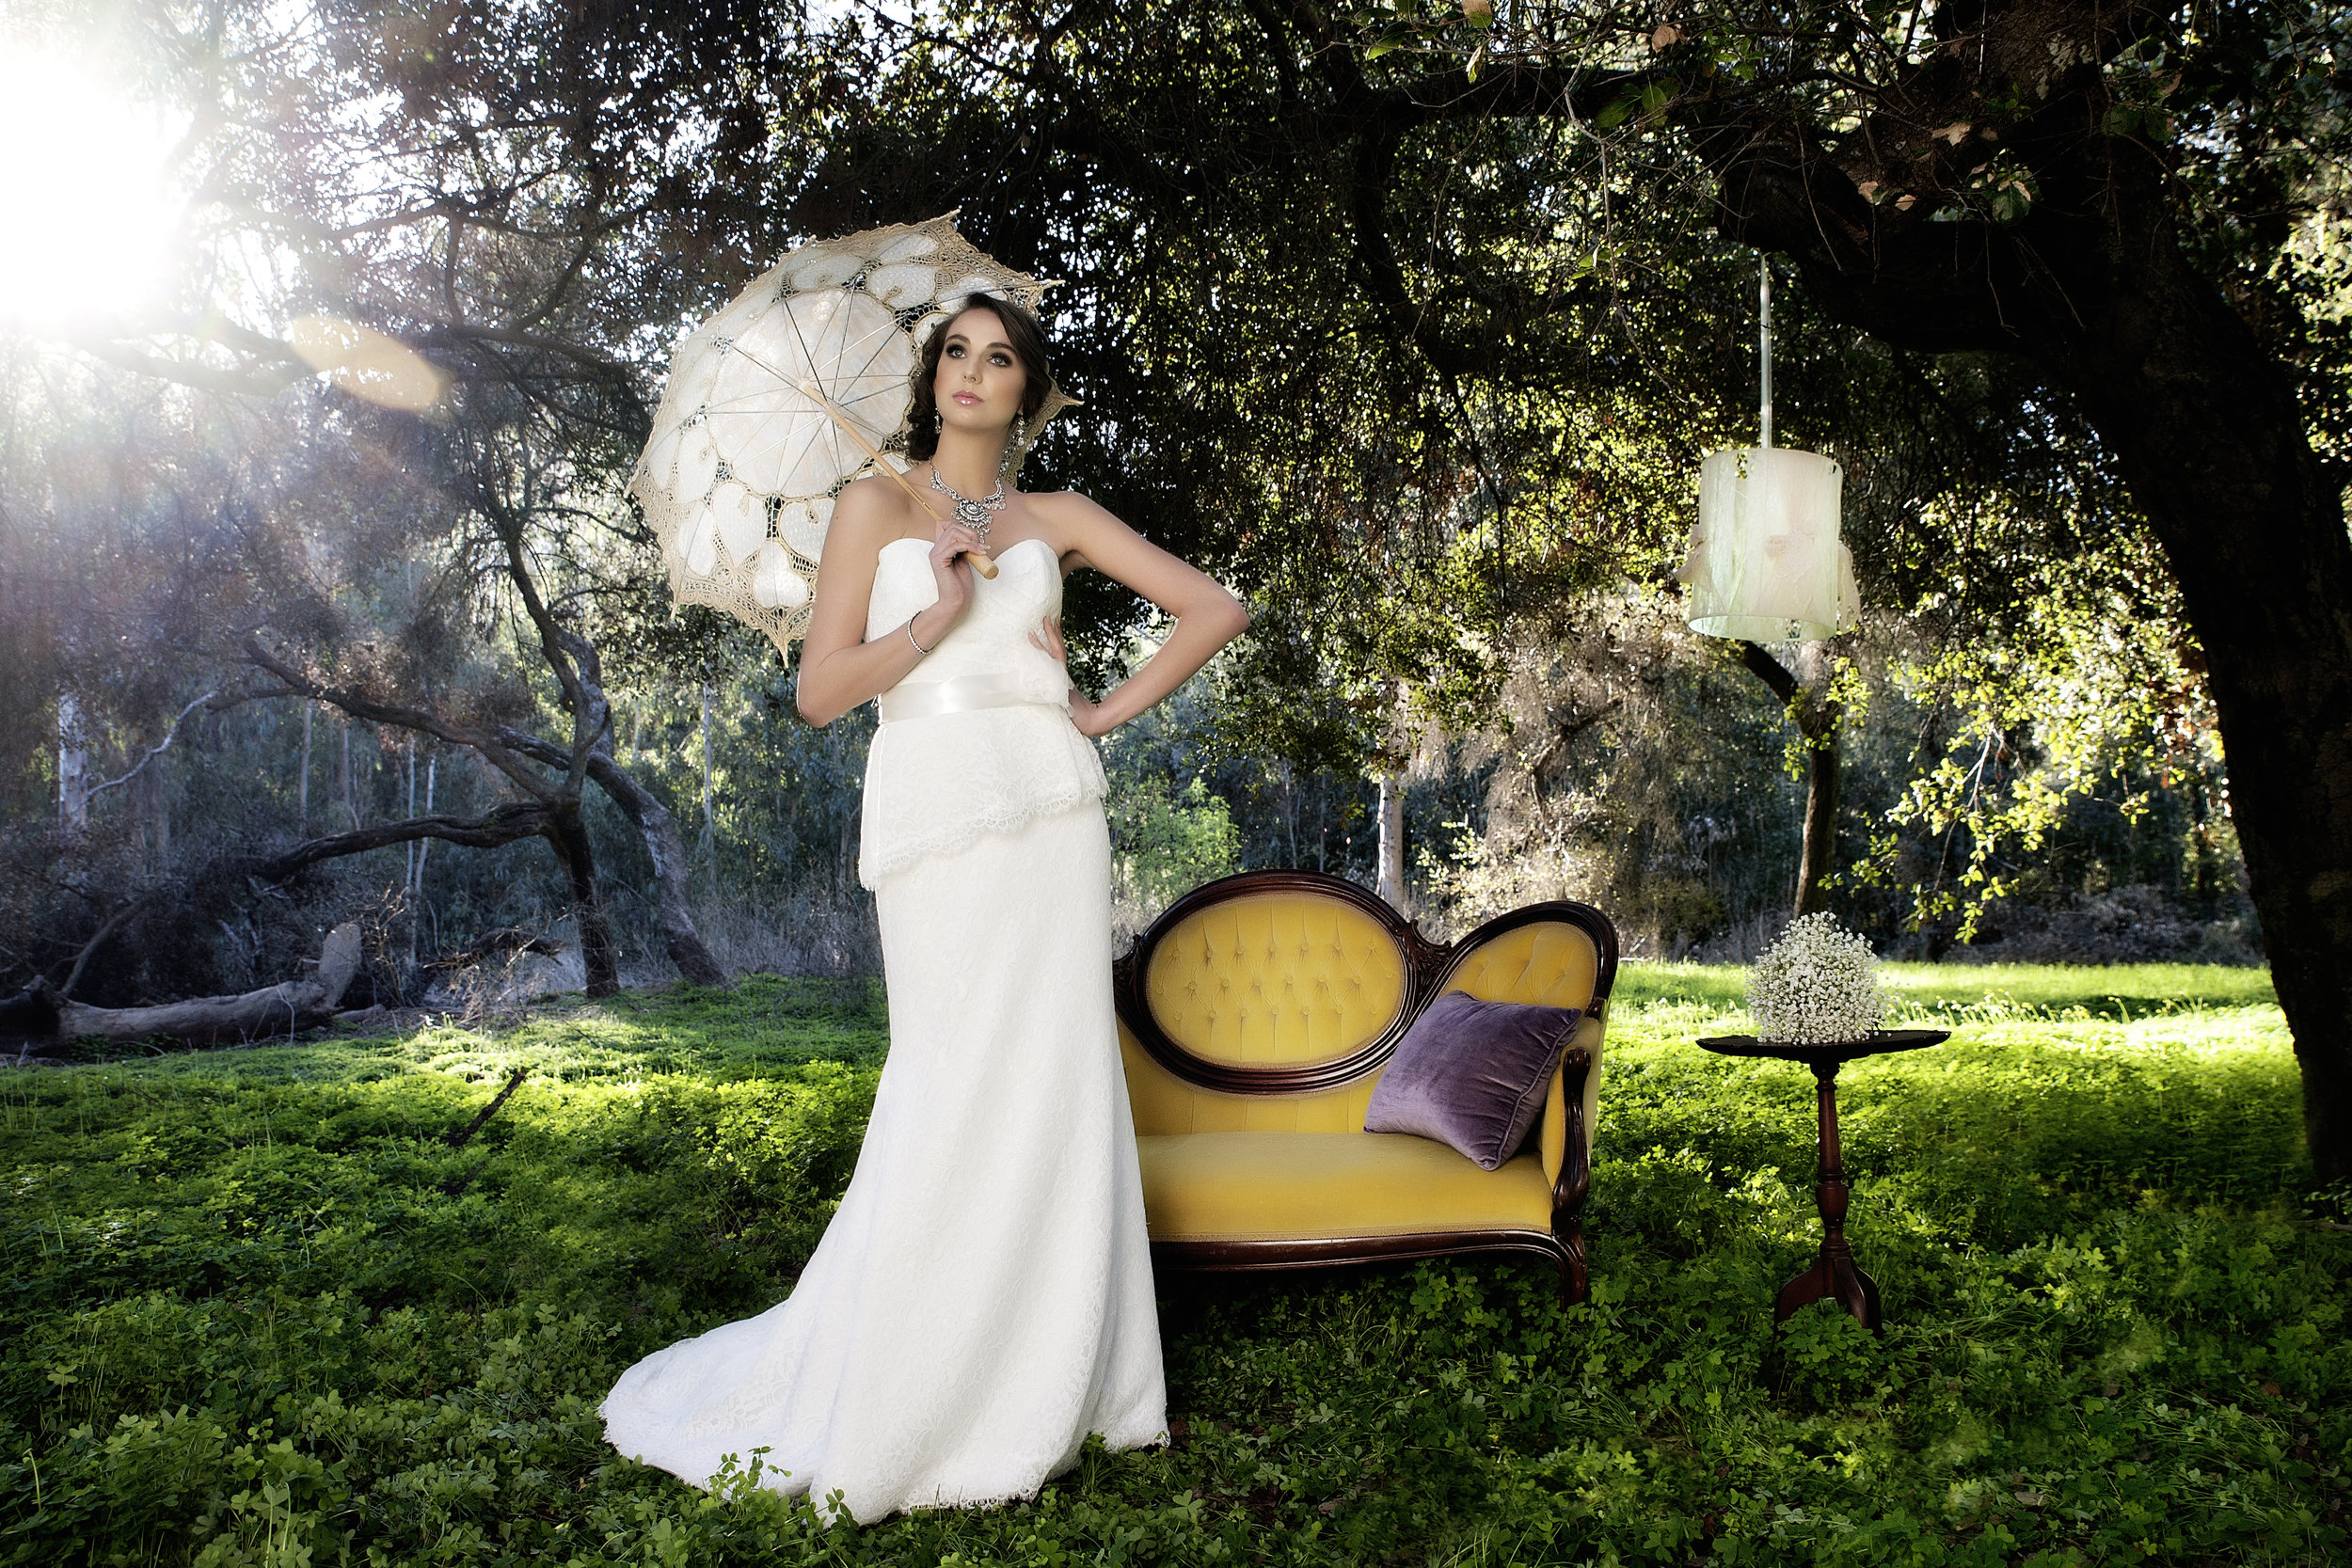 ShadowcatcherGalleryOne_SanDiegoWeddingPhotogrpaher_034.jpg